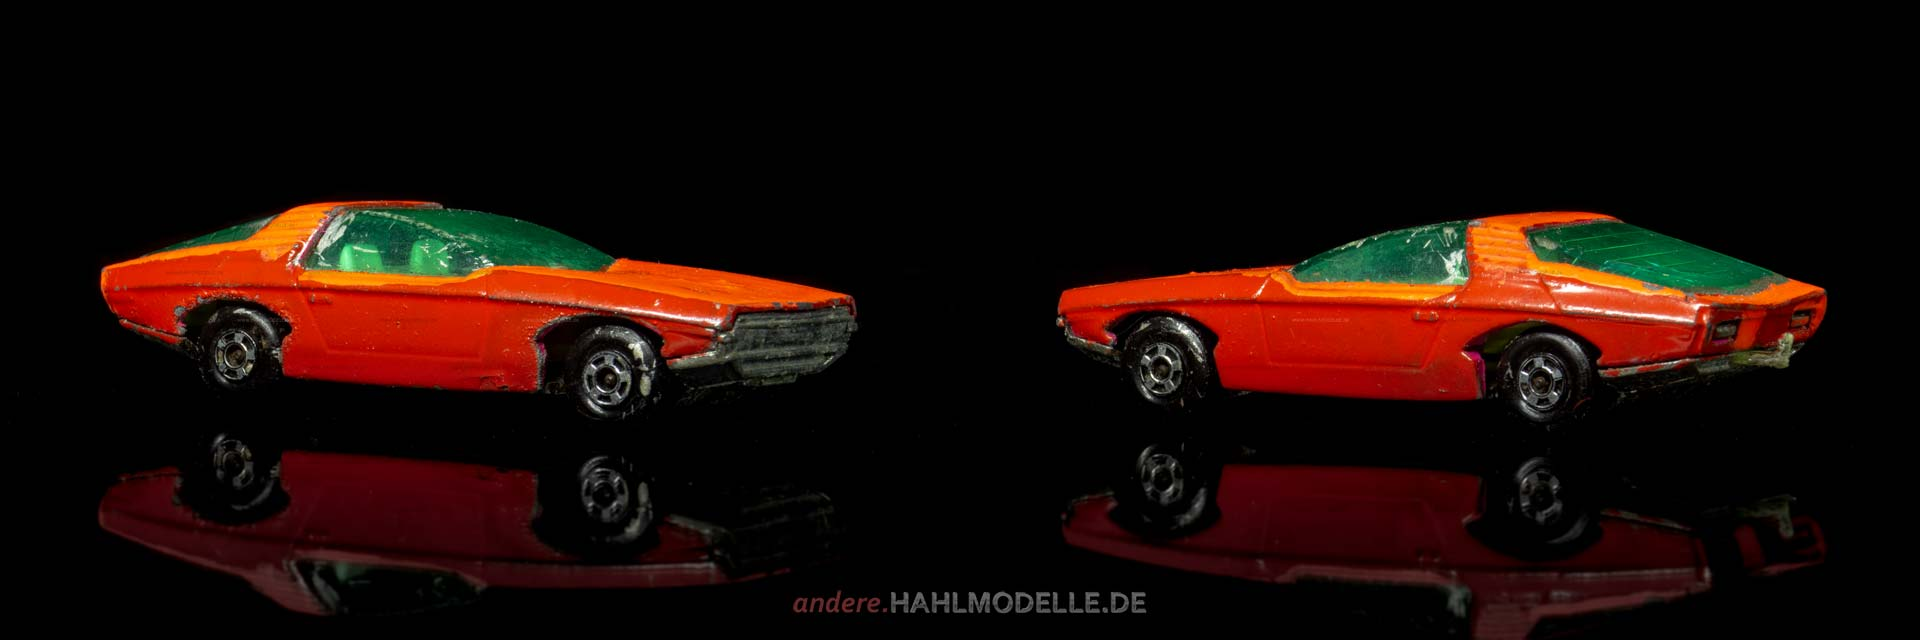 Vauxhall Guildman | Coupé | Lesney Products & Co. Ltd. | Matchbox Superfast | 1:64 | www.andere.hahlmodelle.de